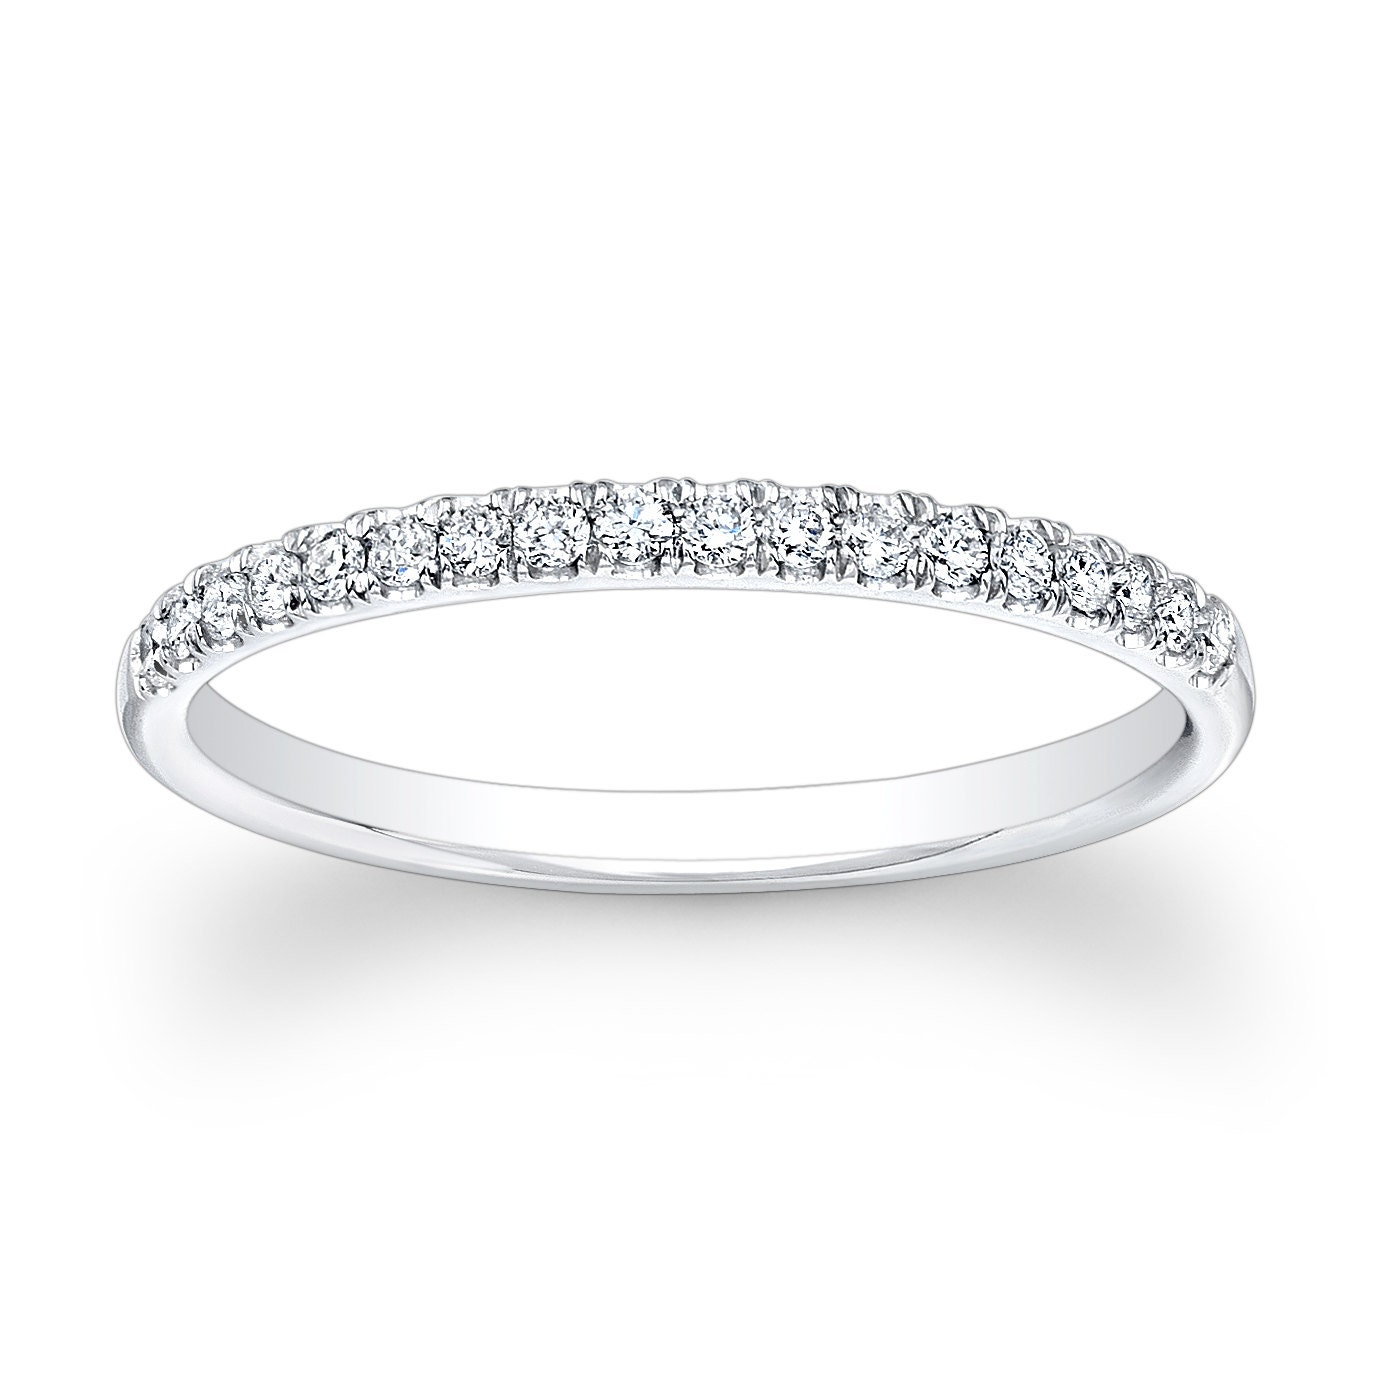 Ladies 18kt white gold diamond wedding band 020 ctw GVS2